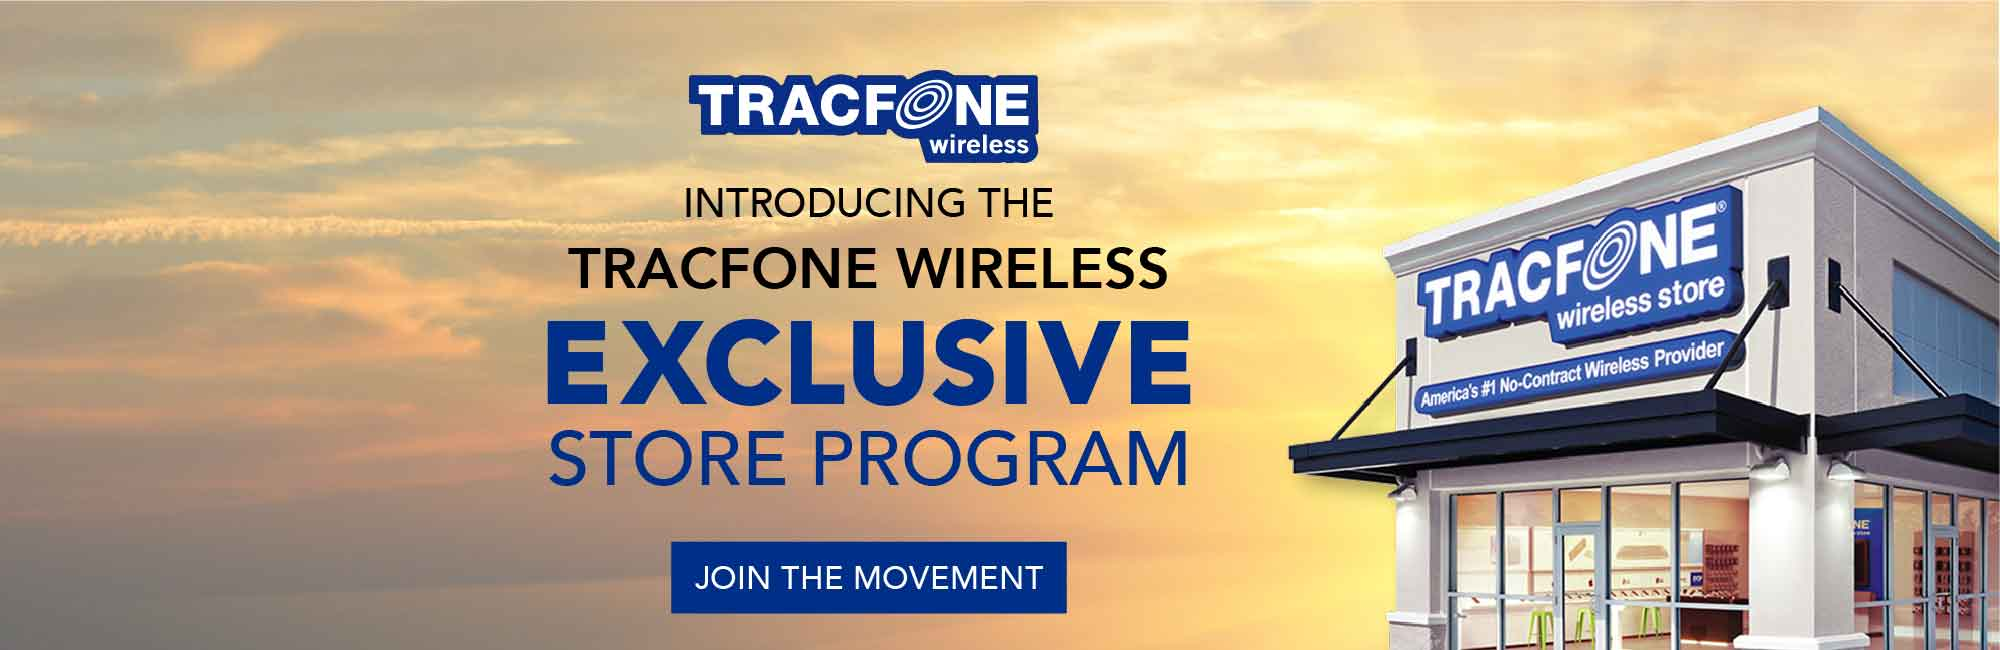 Tracfone Exclusive Store 1